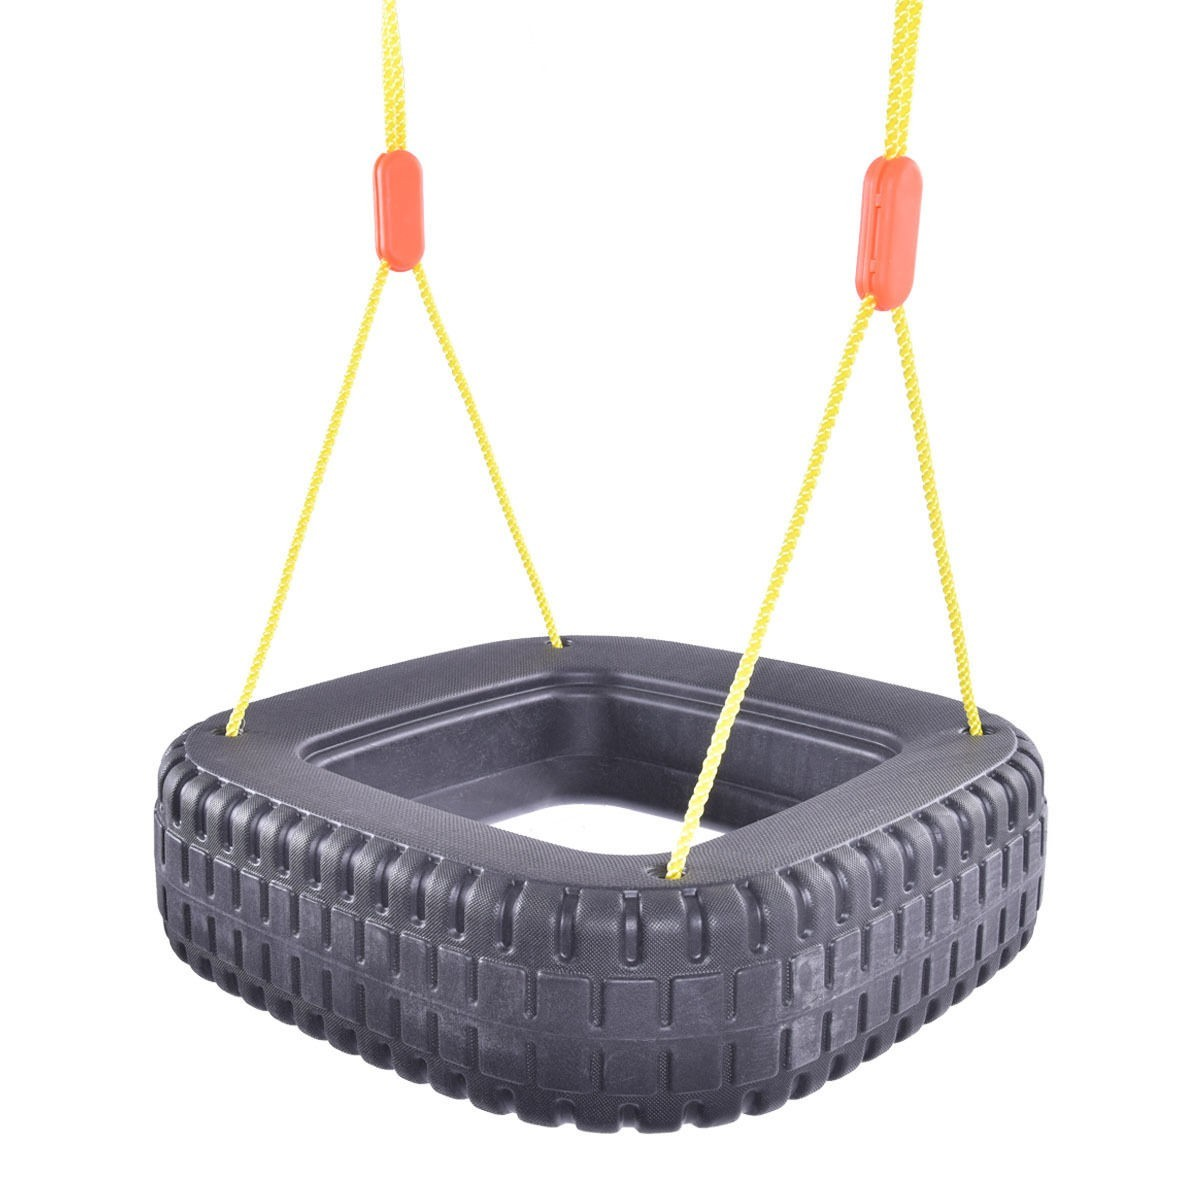 Classic Tire Swing 2 Kids Children Outdoor Play Durable Backyard Swing Set